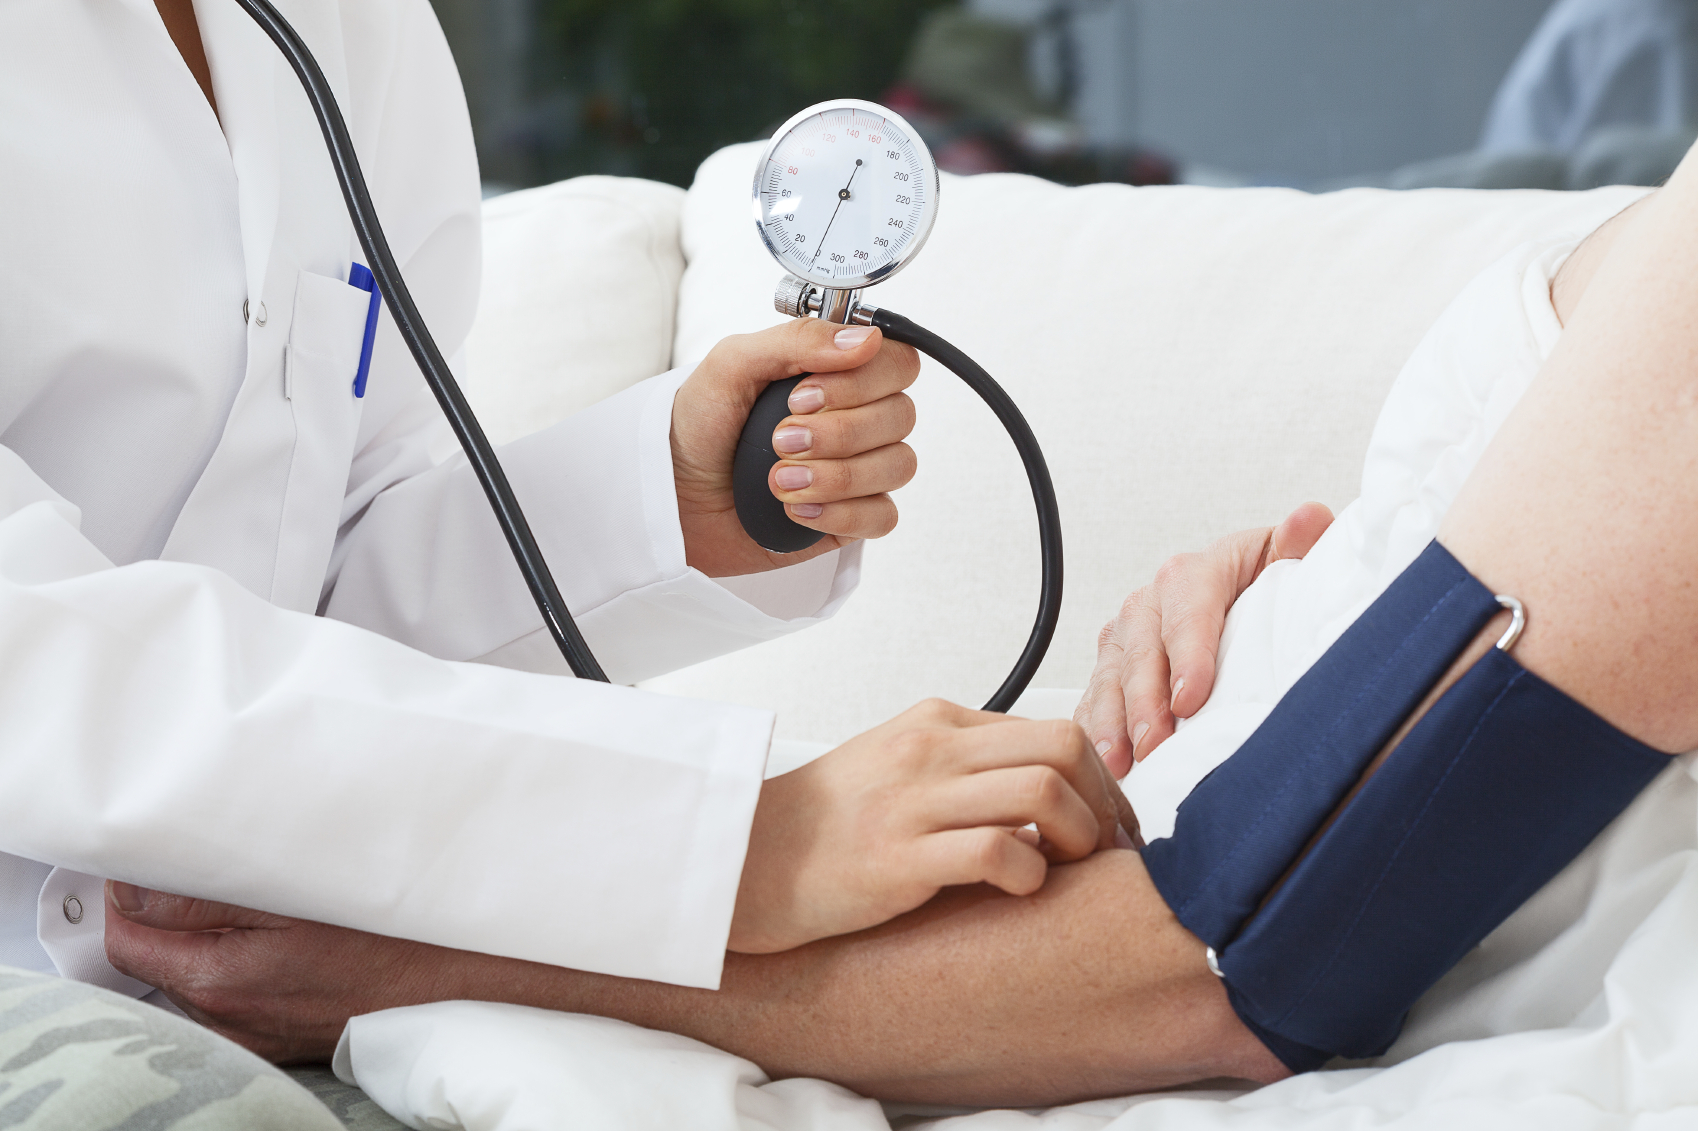 Woman with hypertension at risk for renal impairment